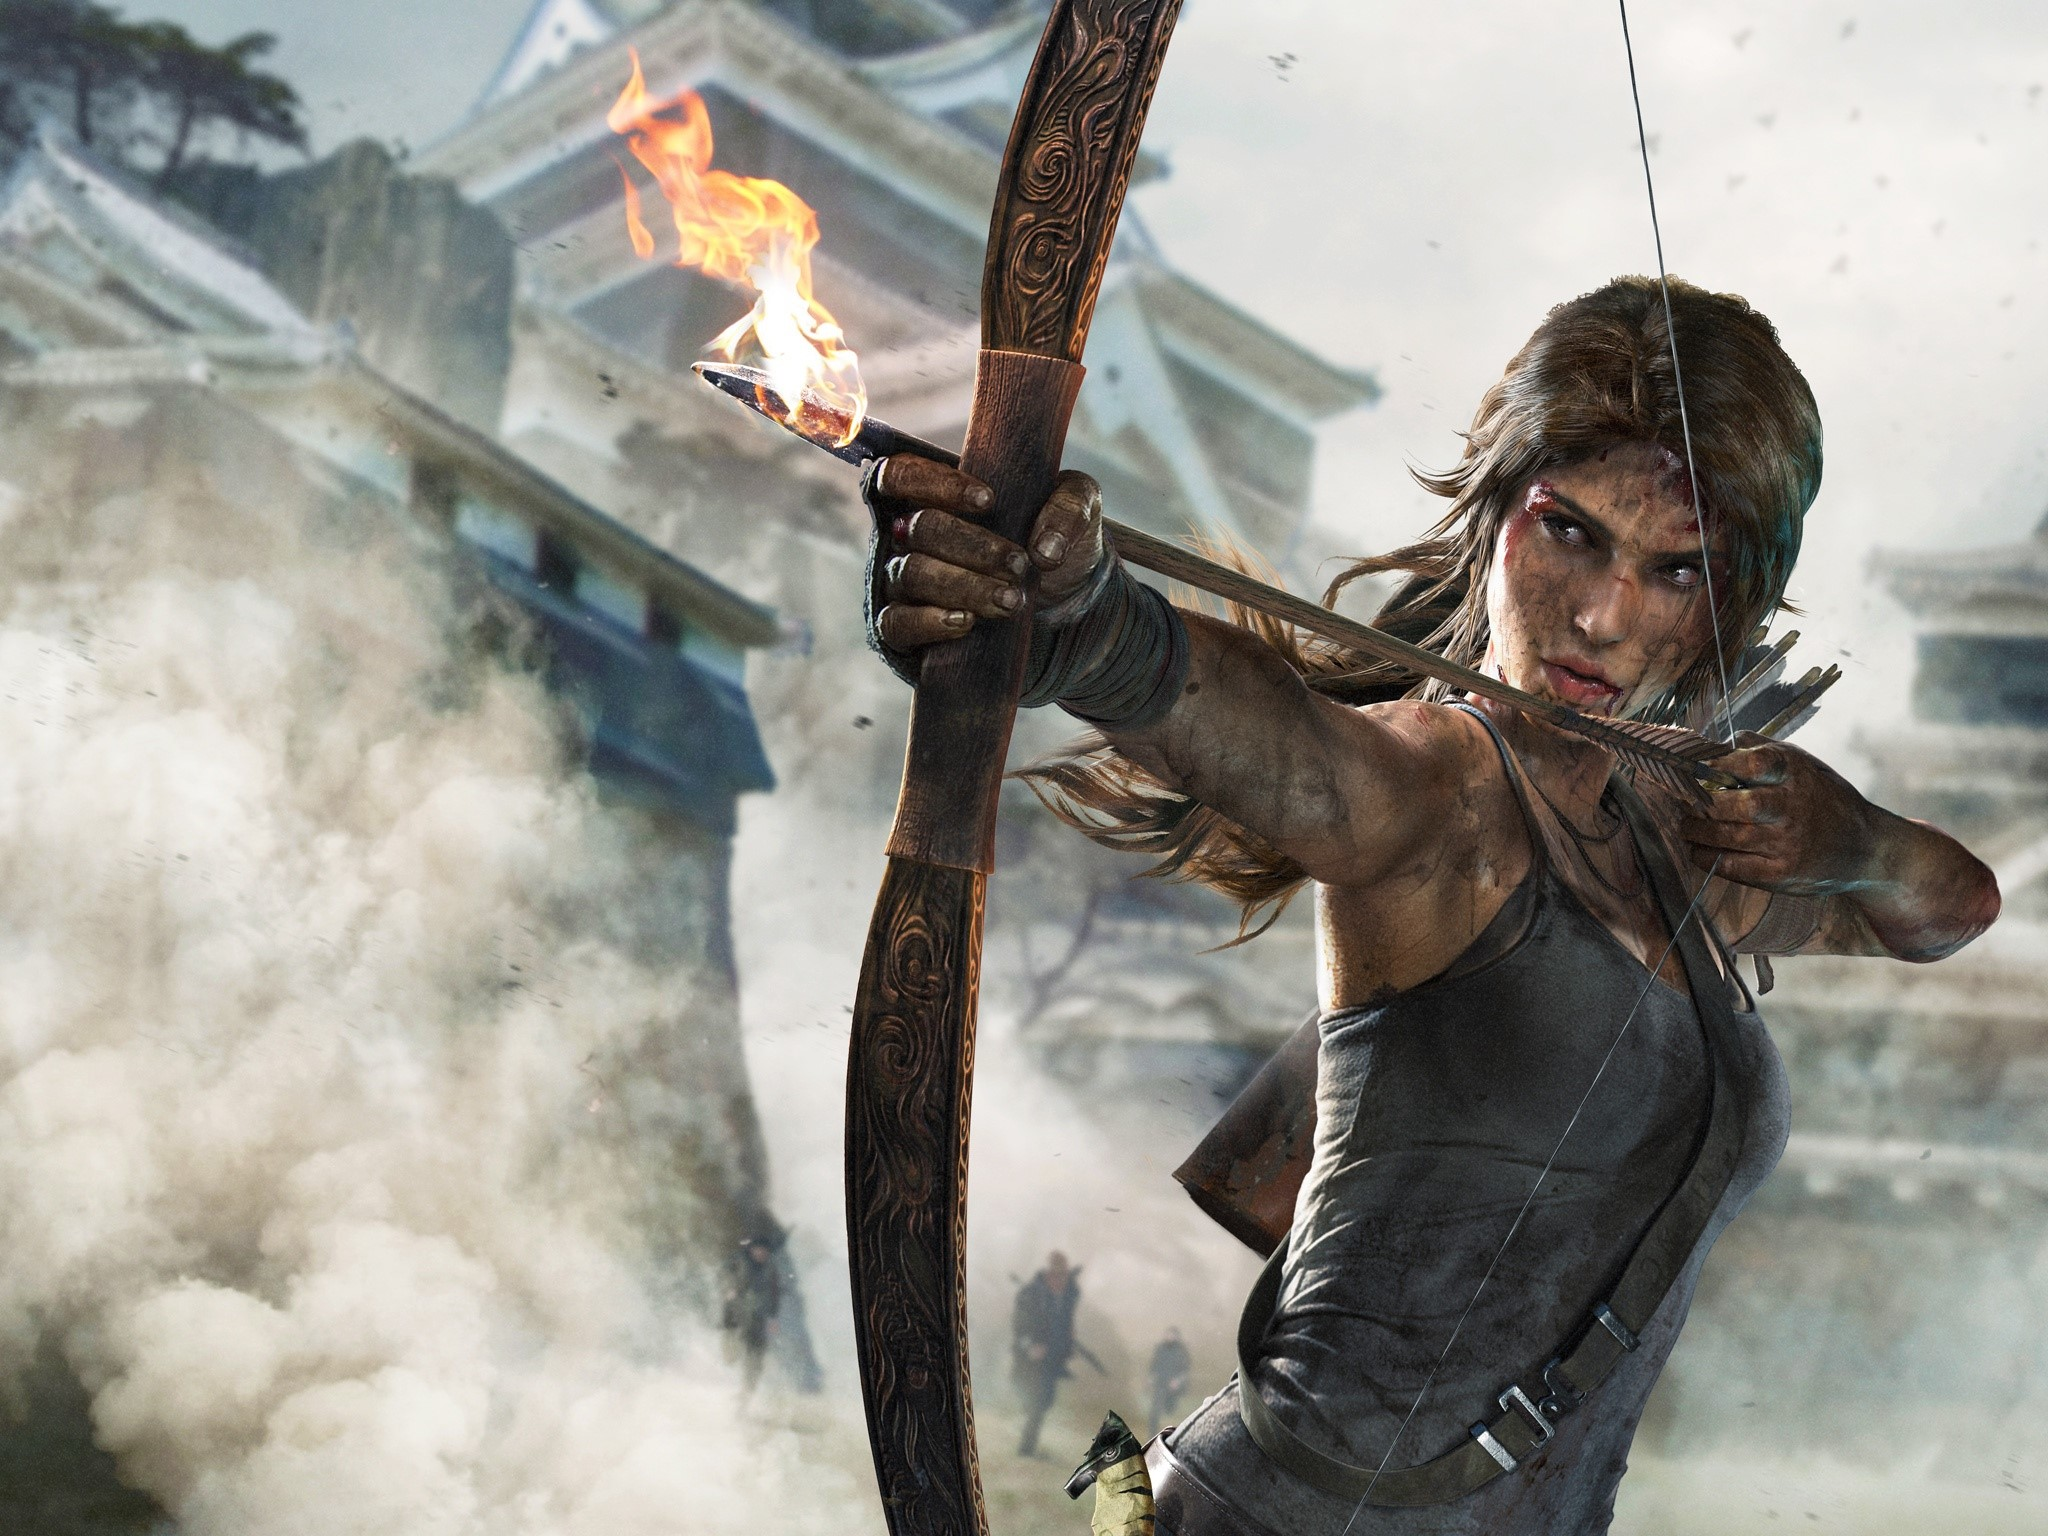 Fondo de pantalla de Tomb Raider Definitive Edition Imágenes